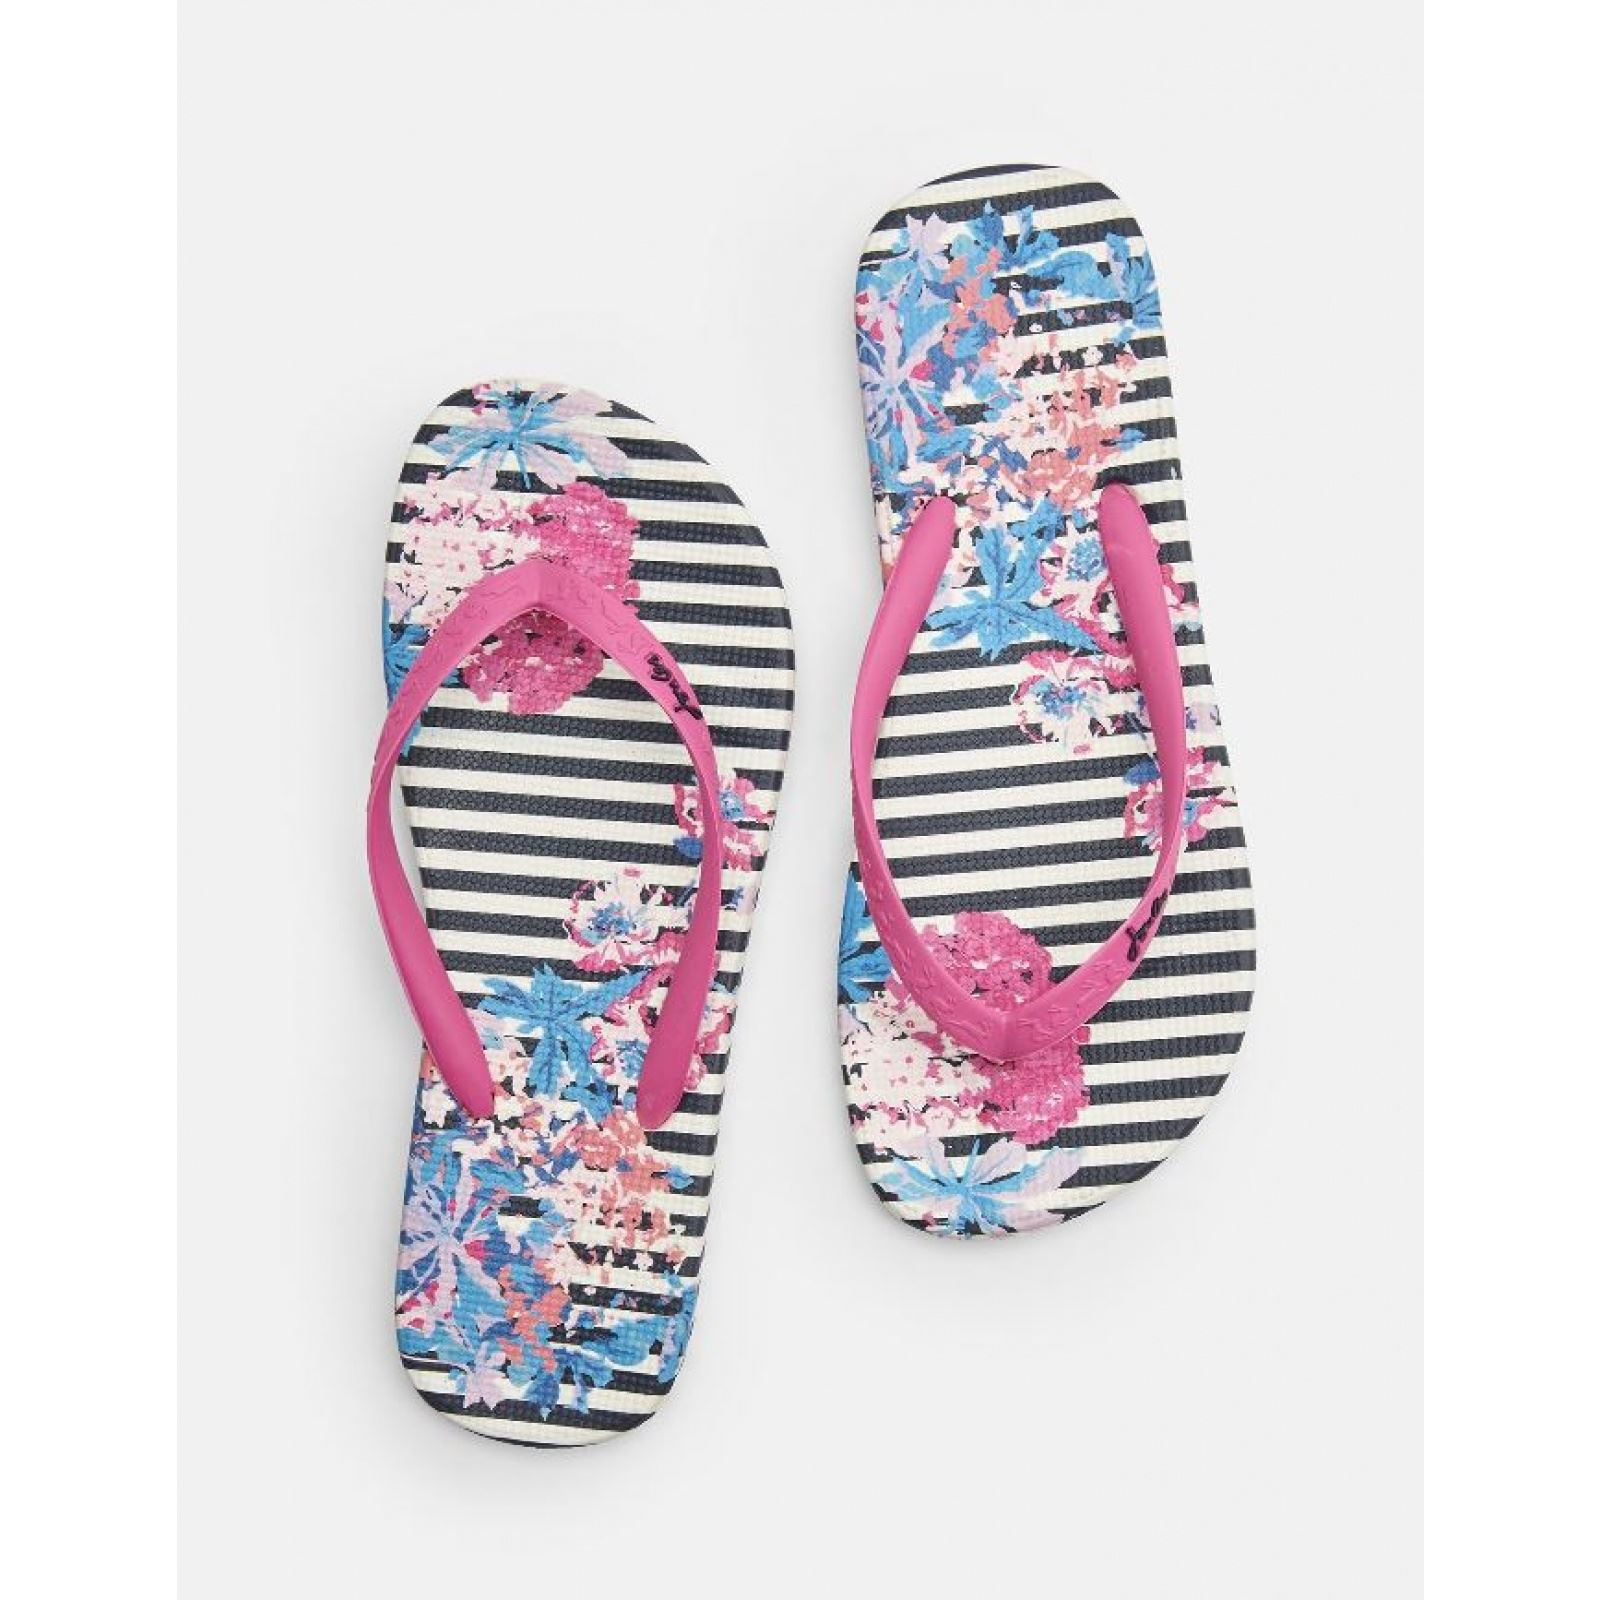 Joules-Flip-Flops-Sandals-Summer-Flip-Flop-NEW-2019-COLOURS thumbnail 25